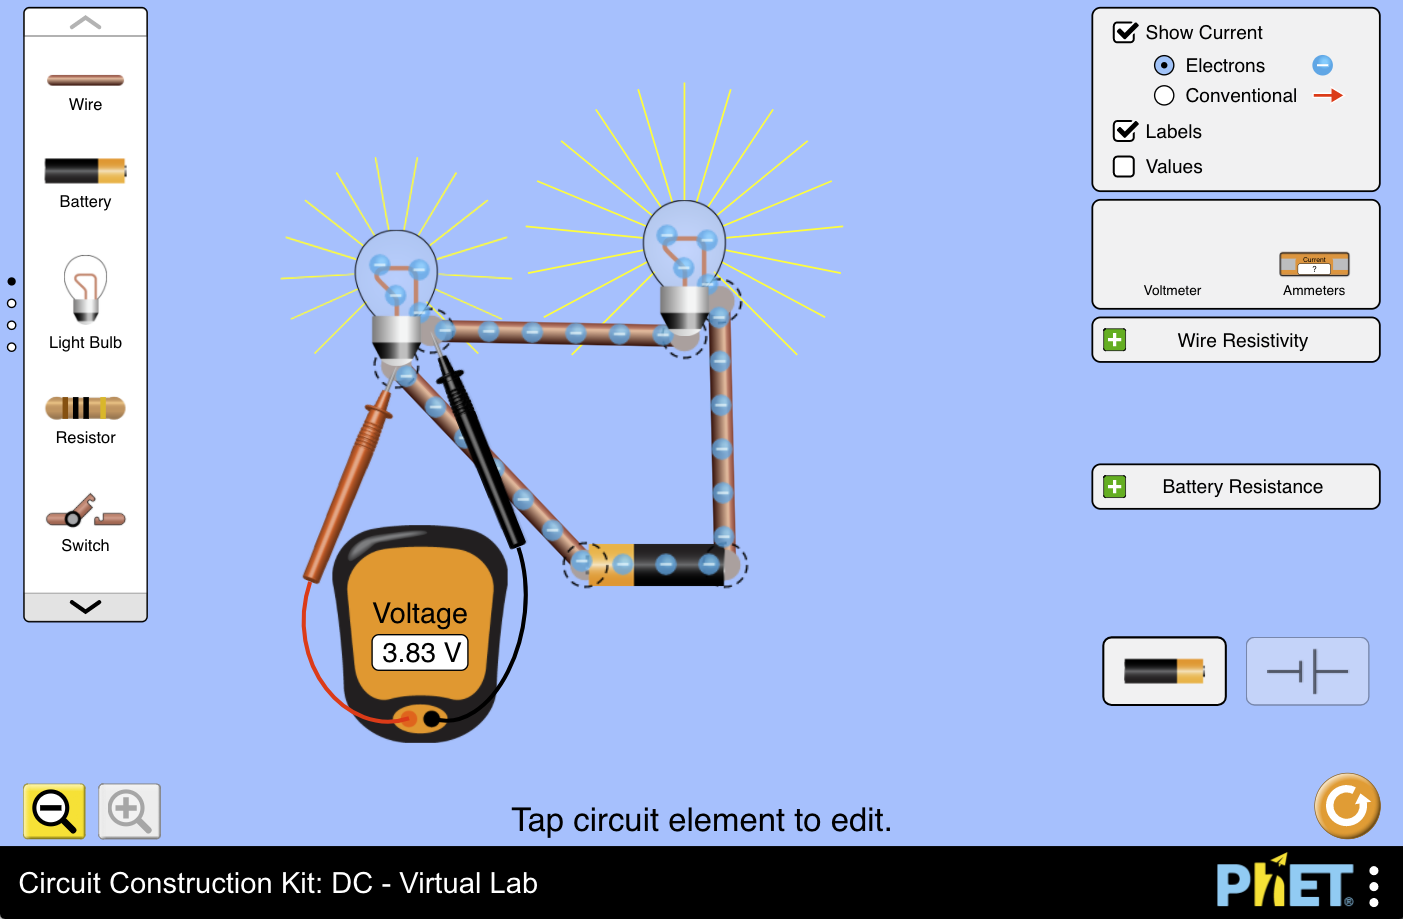 Phet Circuit Construction Kit Dc Everything About Wiring Diagram Simulation Acdc 1 0 Screenshot Issue 4 Phetsims Rh Github Com